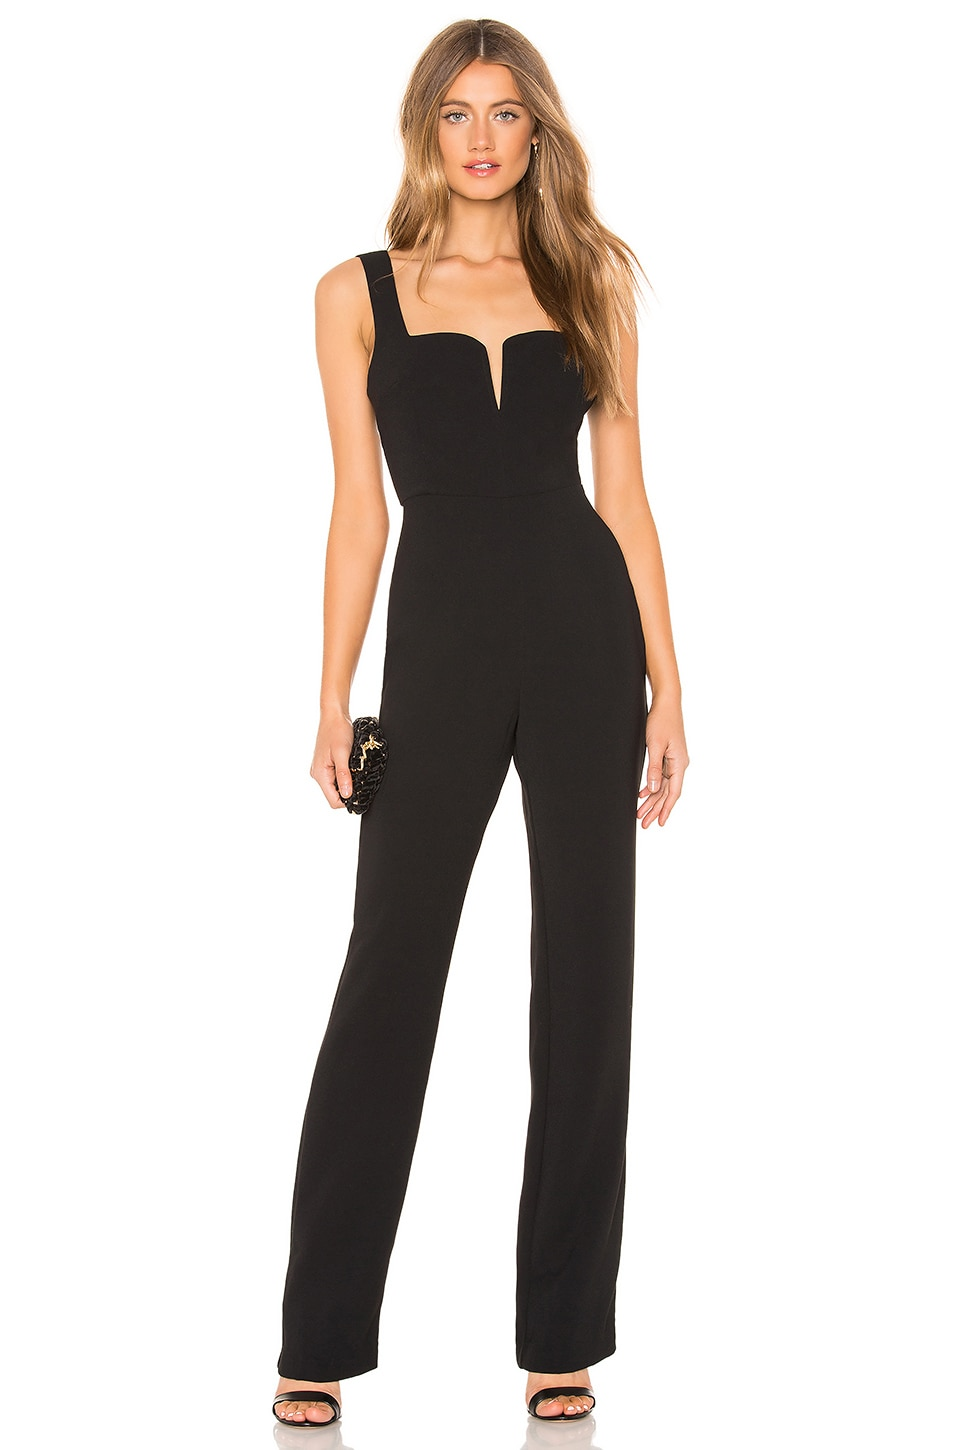 NBD Forget Me Not Jumpsuit in Black